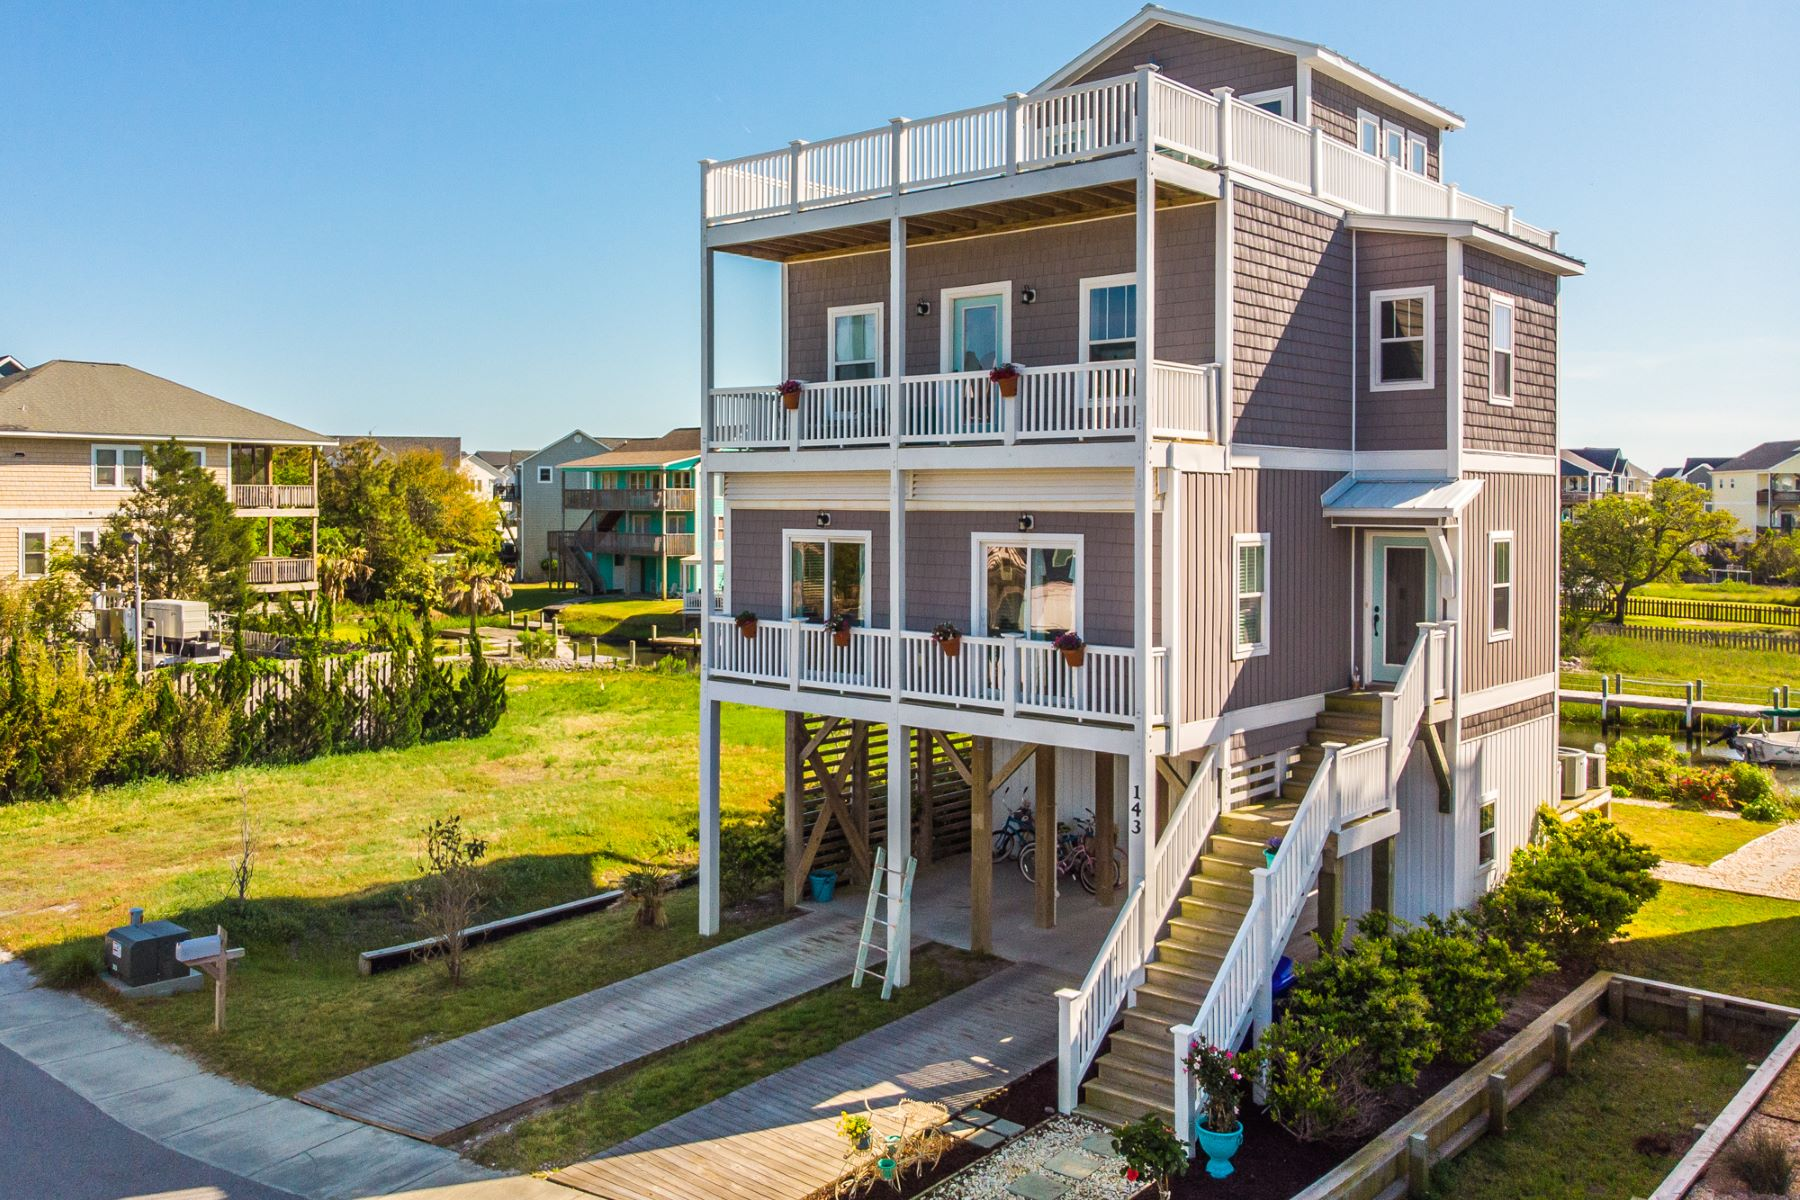 Single Family Homes for Active at Canal Front Oasis with Panoramic Views 143 Atkinson Road Surf City, North Carolina 28445 United States